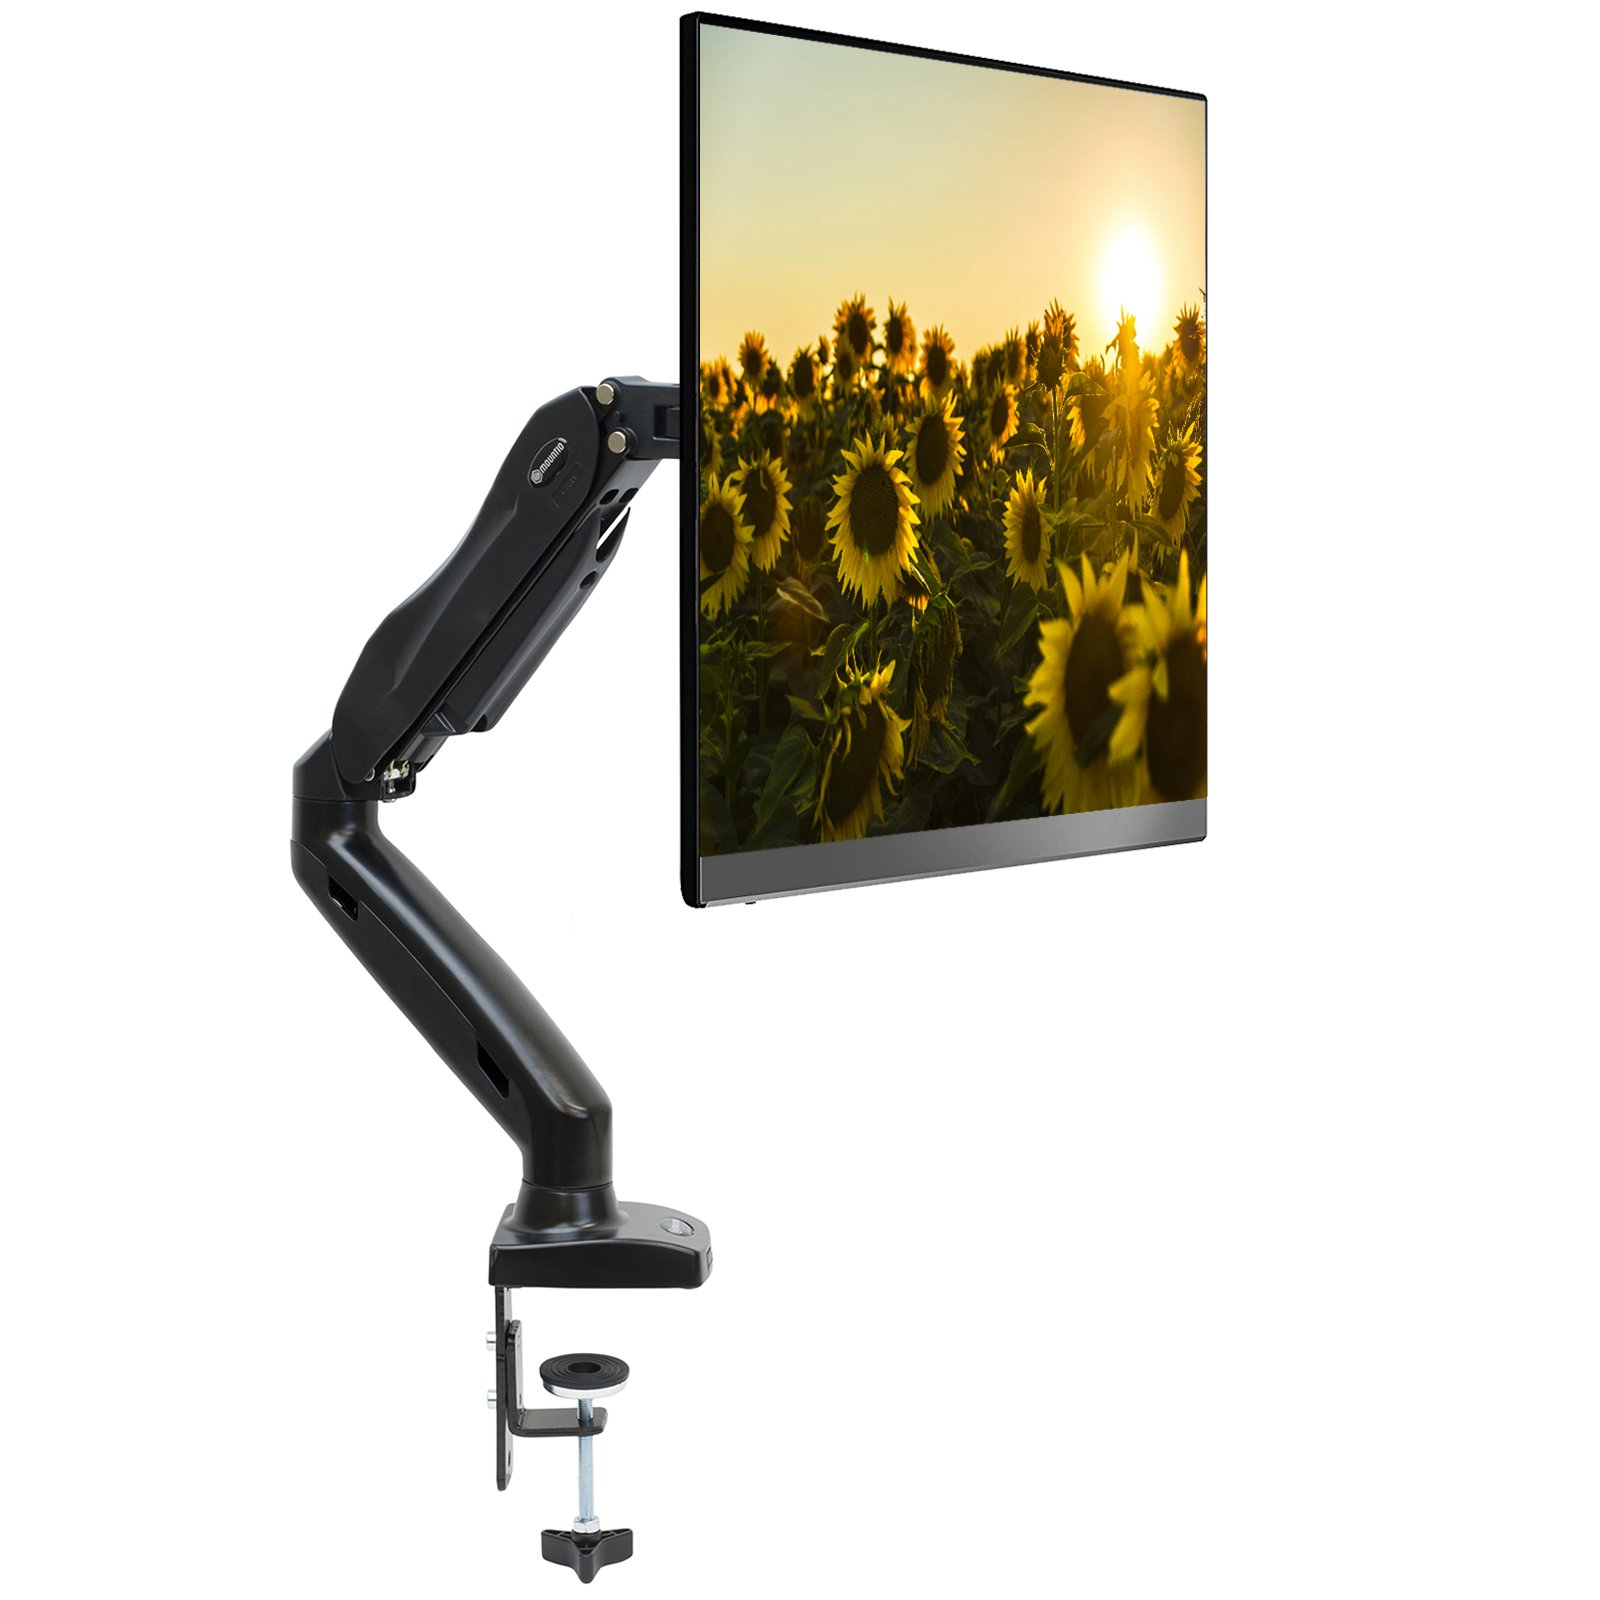 Mountio Full Motion LCD Monitor Arm - Gas Spring Desk Mount Stand for Screens up to 27''